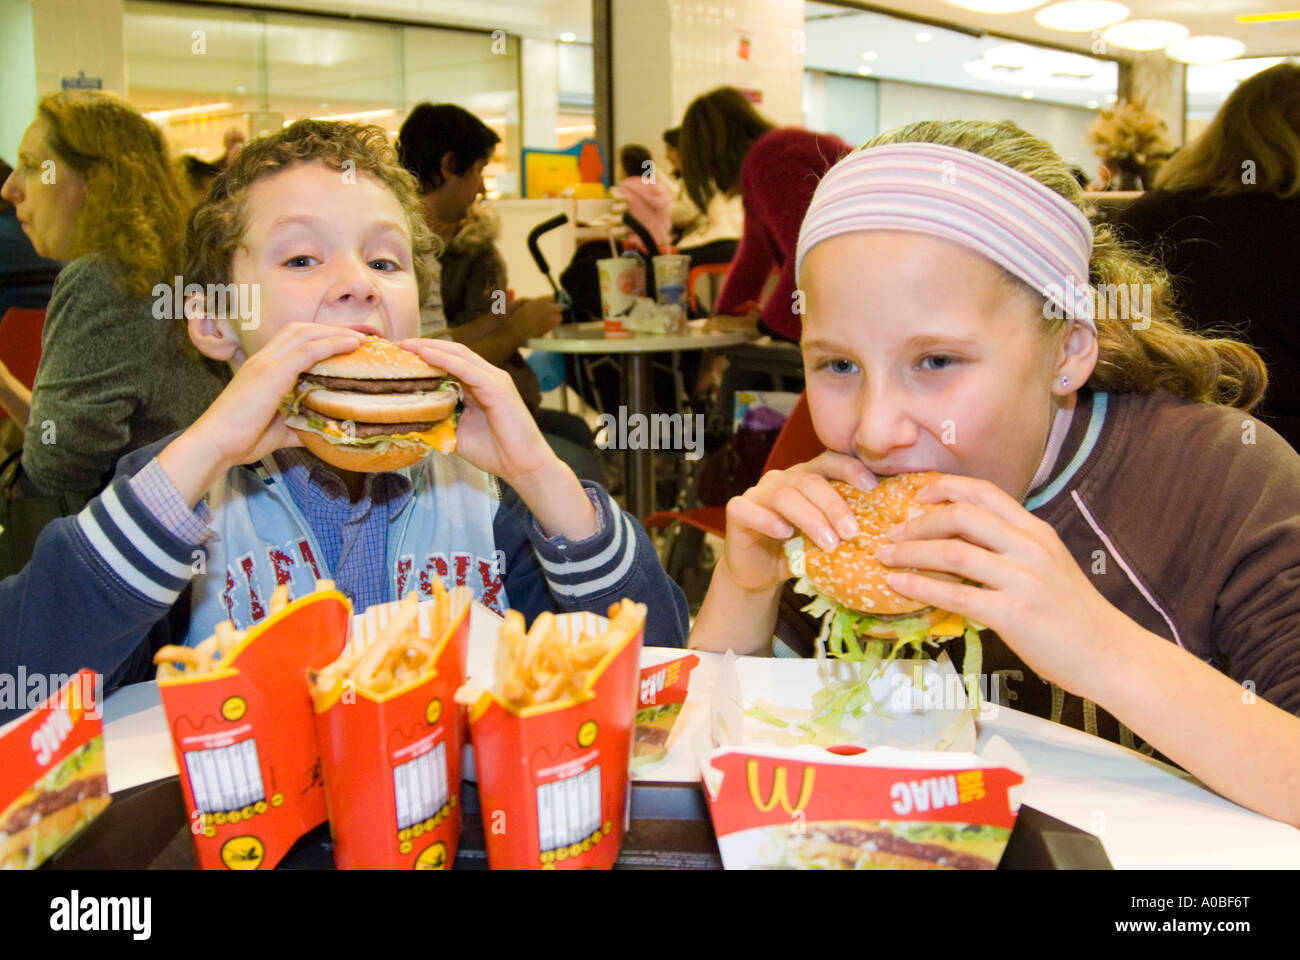 junk food and kids uk stock photos junk food and kids uk stock children eating mcdonald s big mac hamburgers england uk stock image